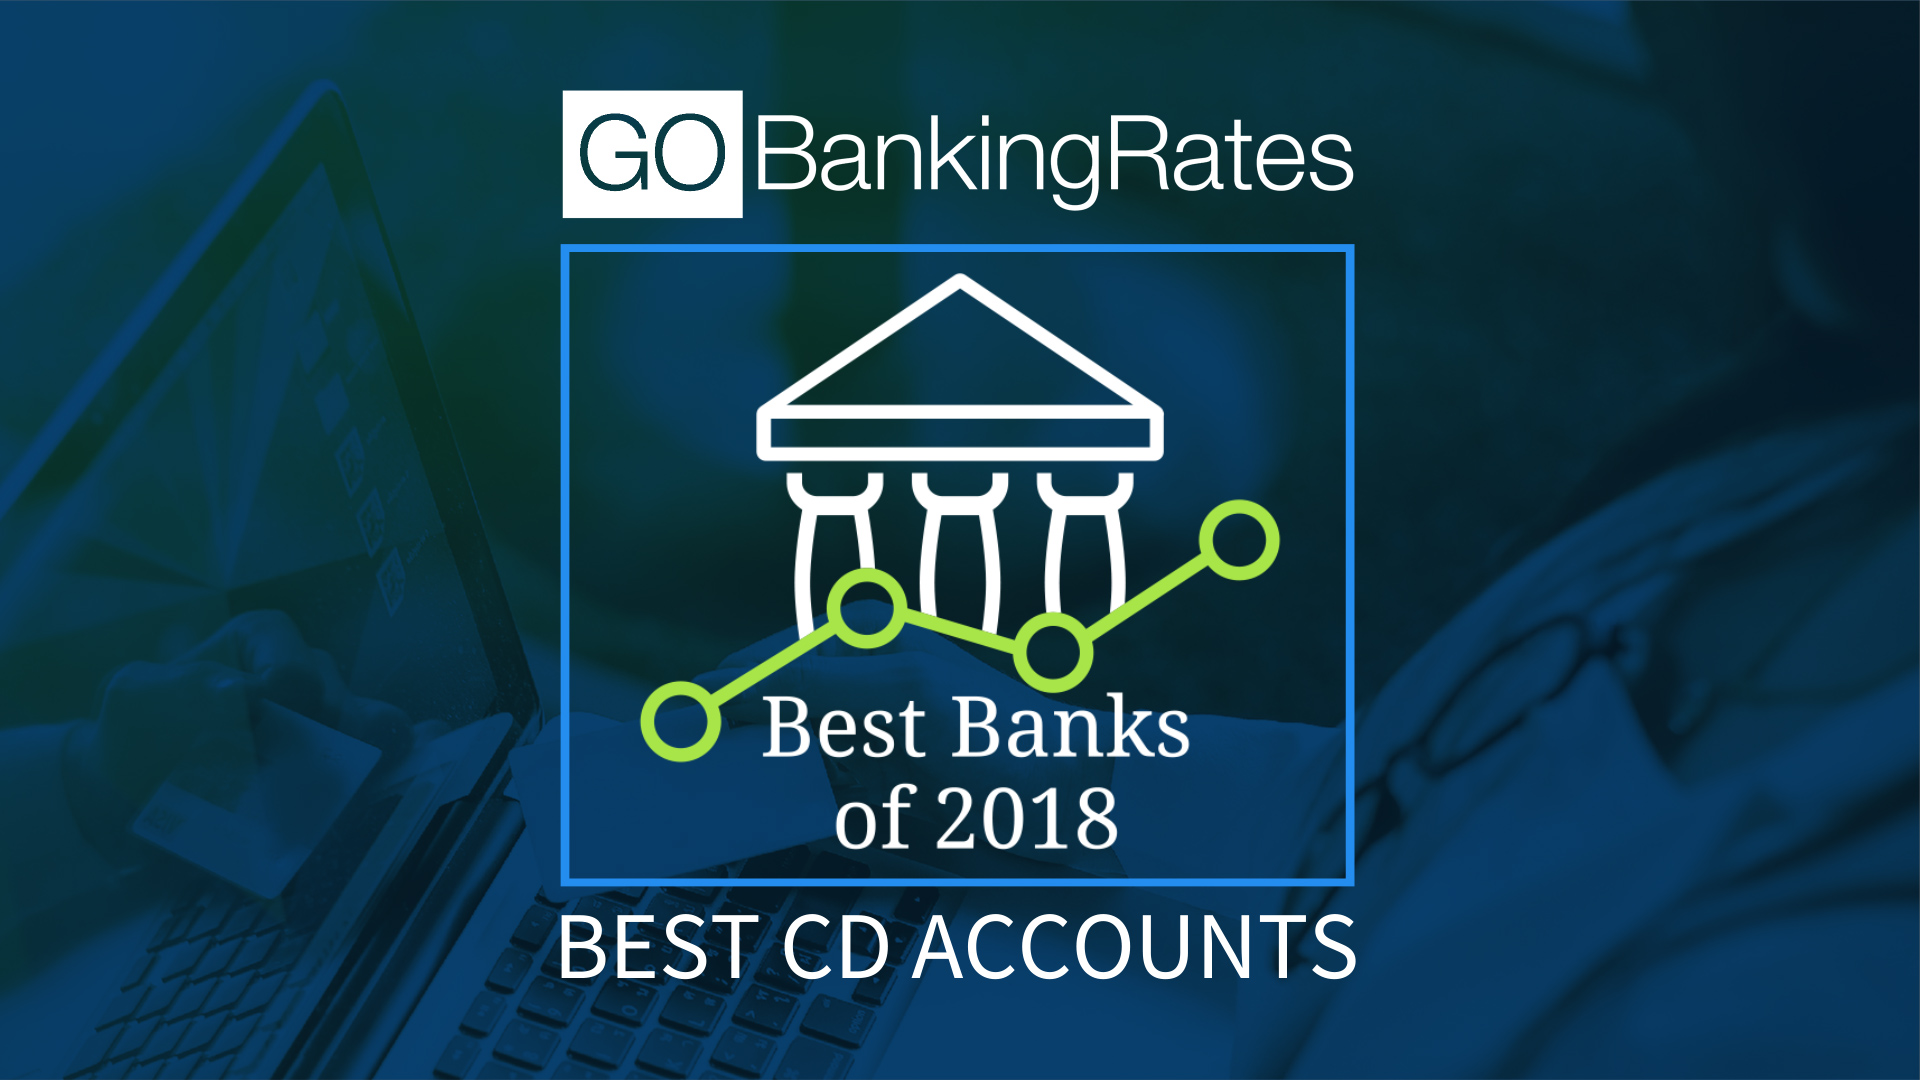 10 Best Cd Accounts Of 2018 Gobankingrates